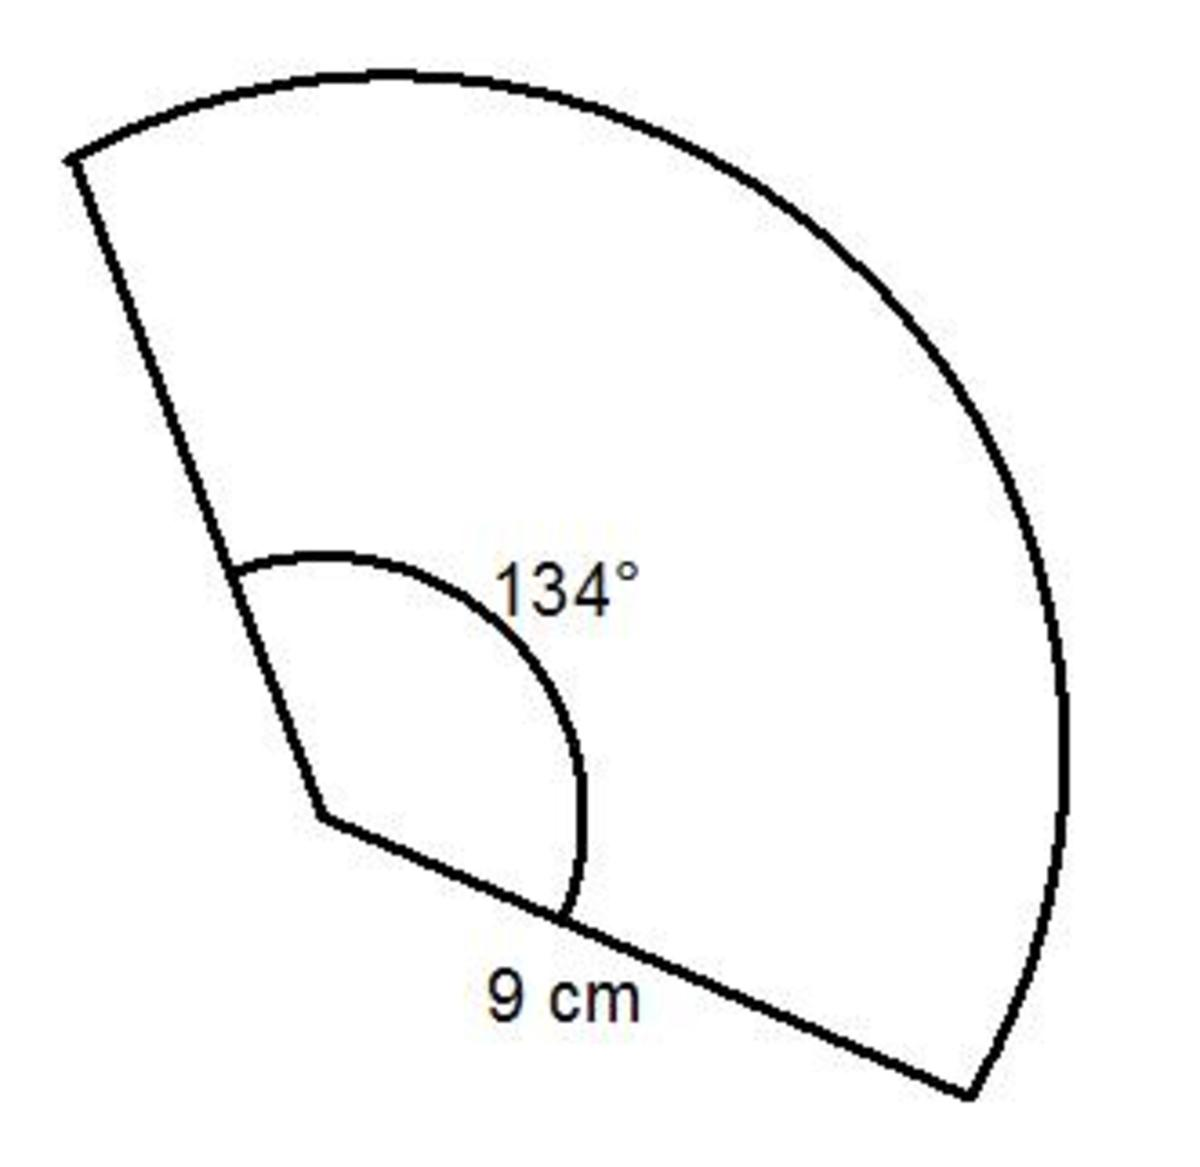 How to work out the arc length and perimeter of a sector